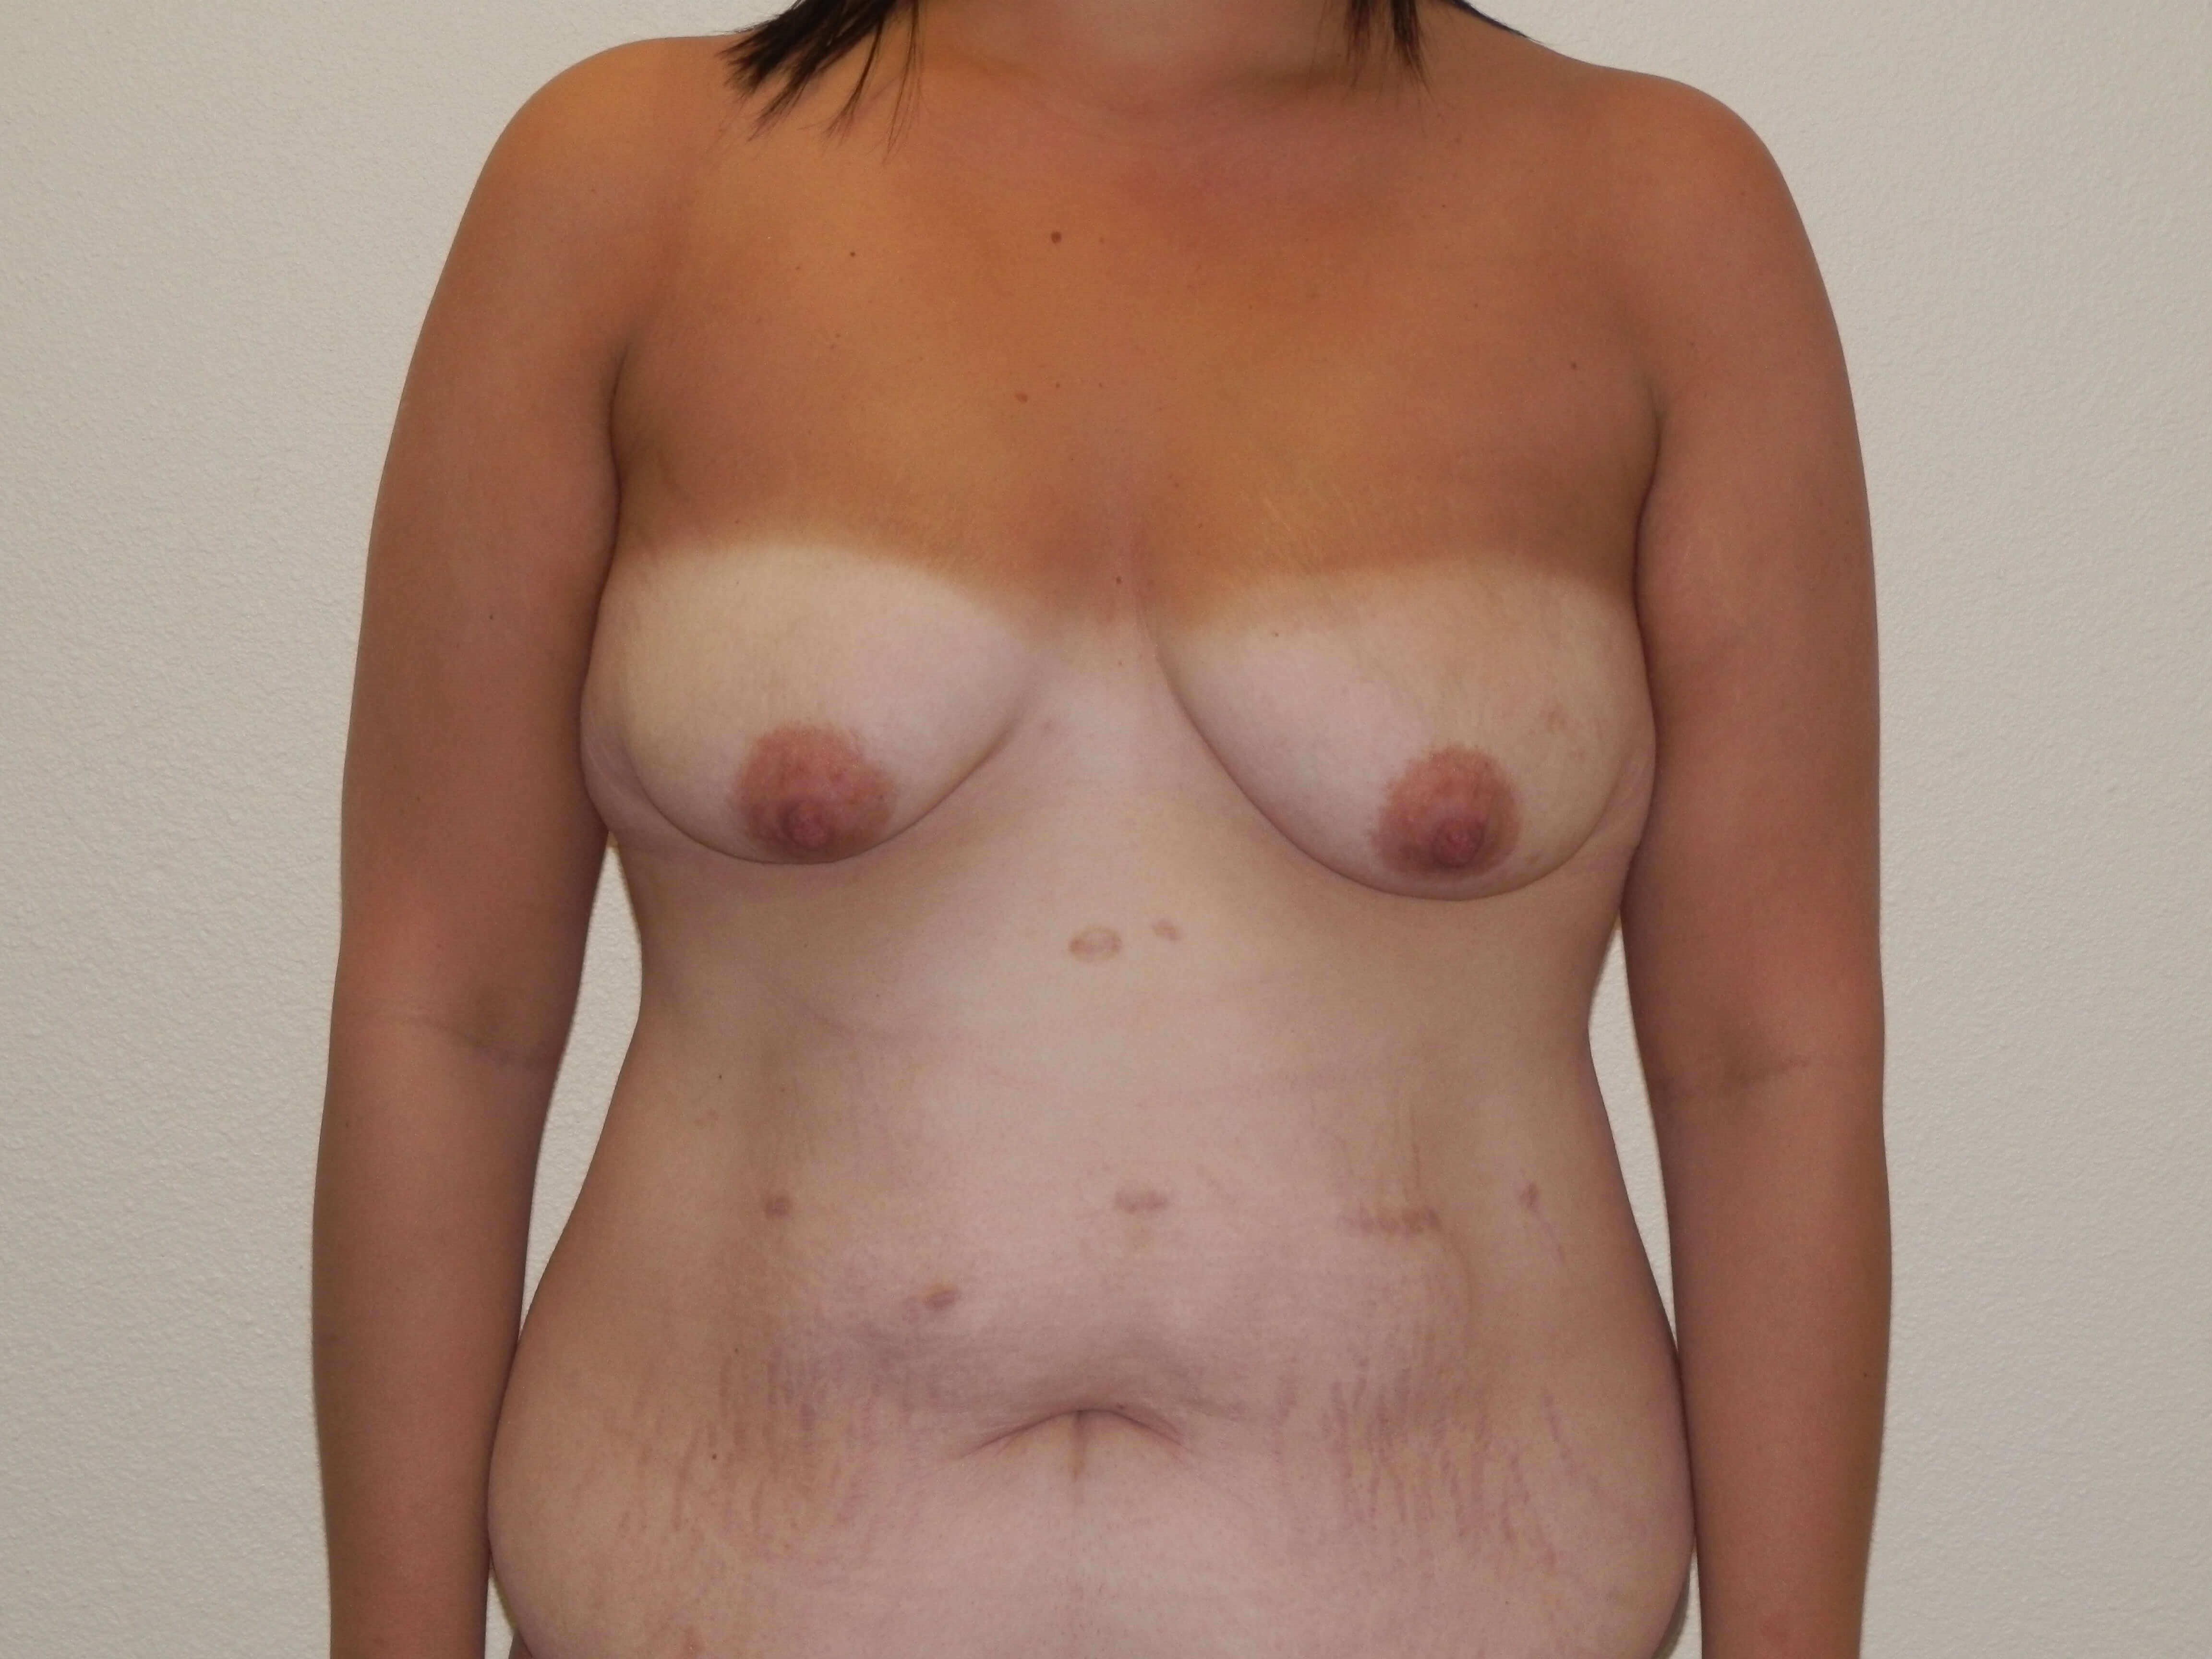 Breast augmentation minilift Before